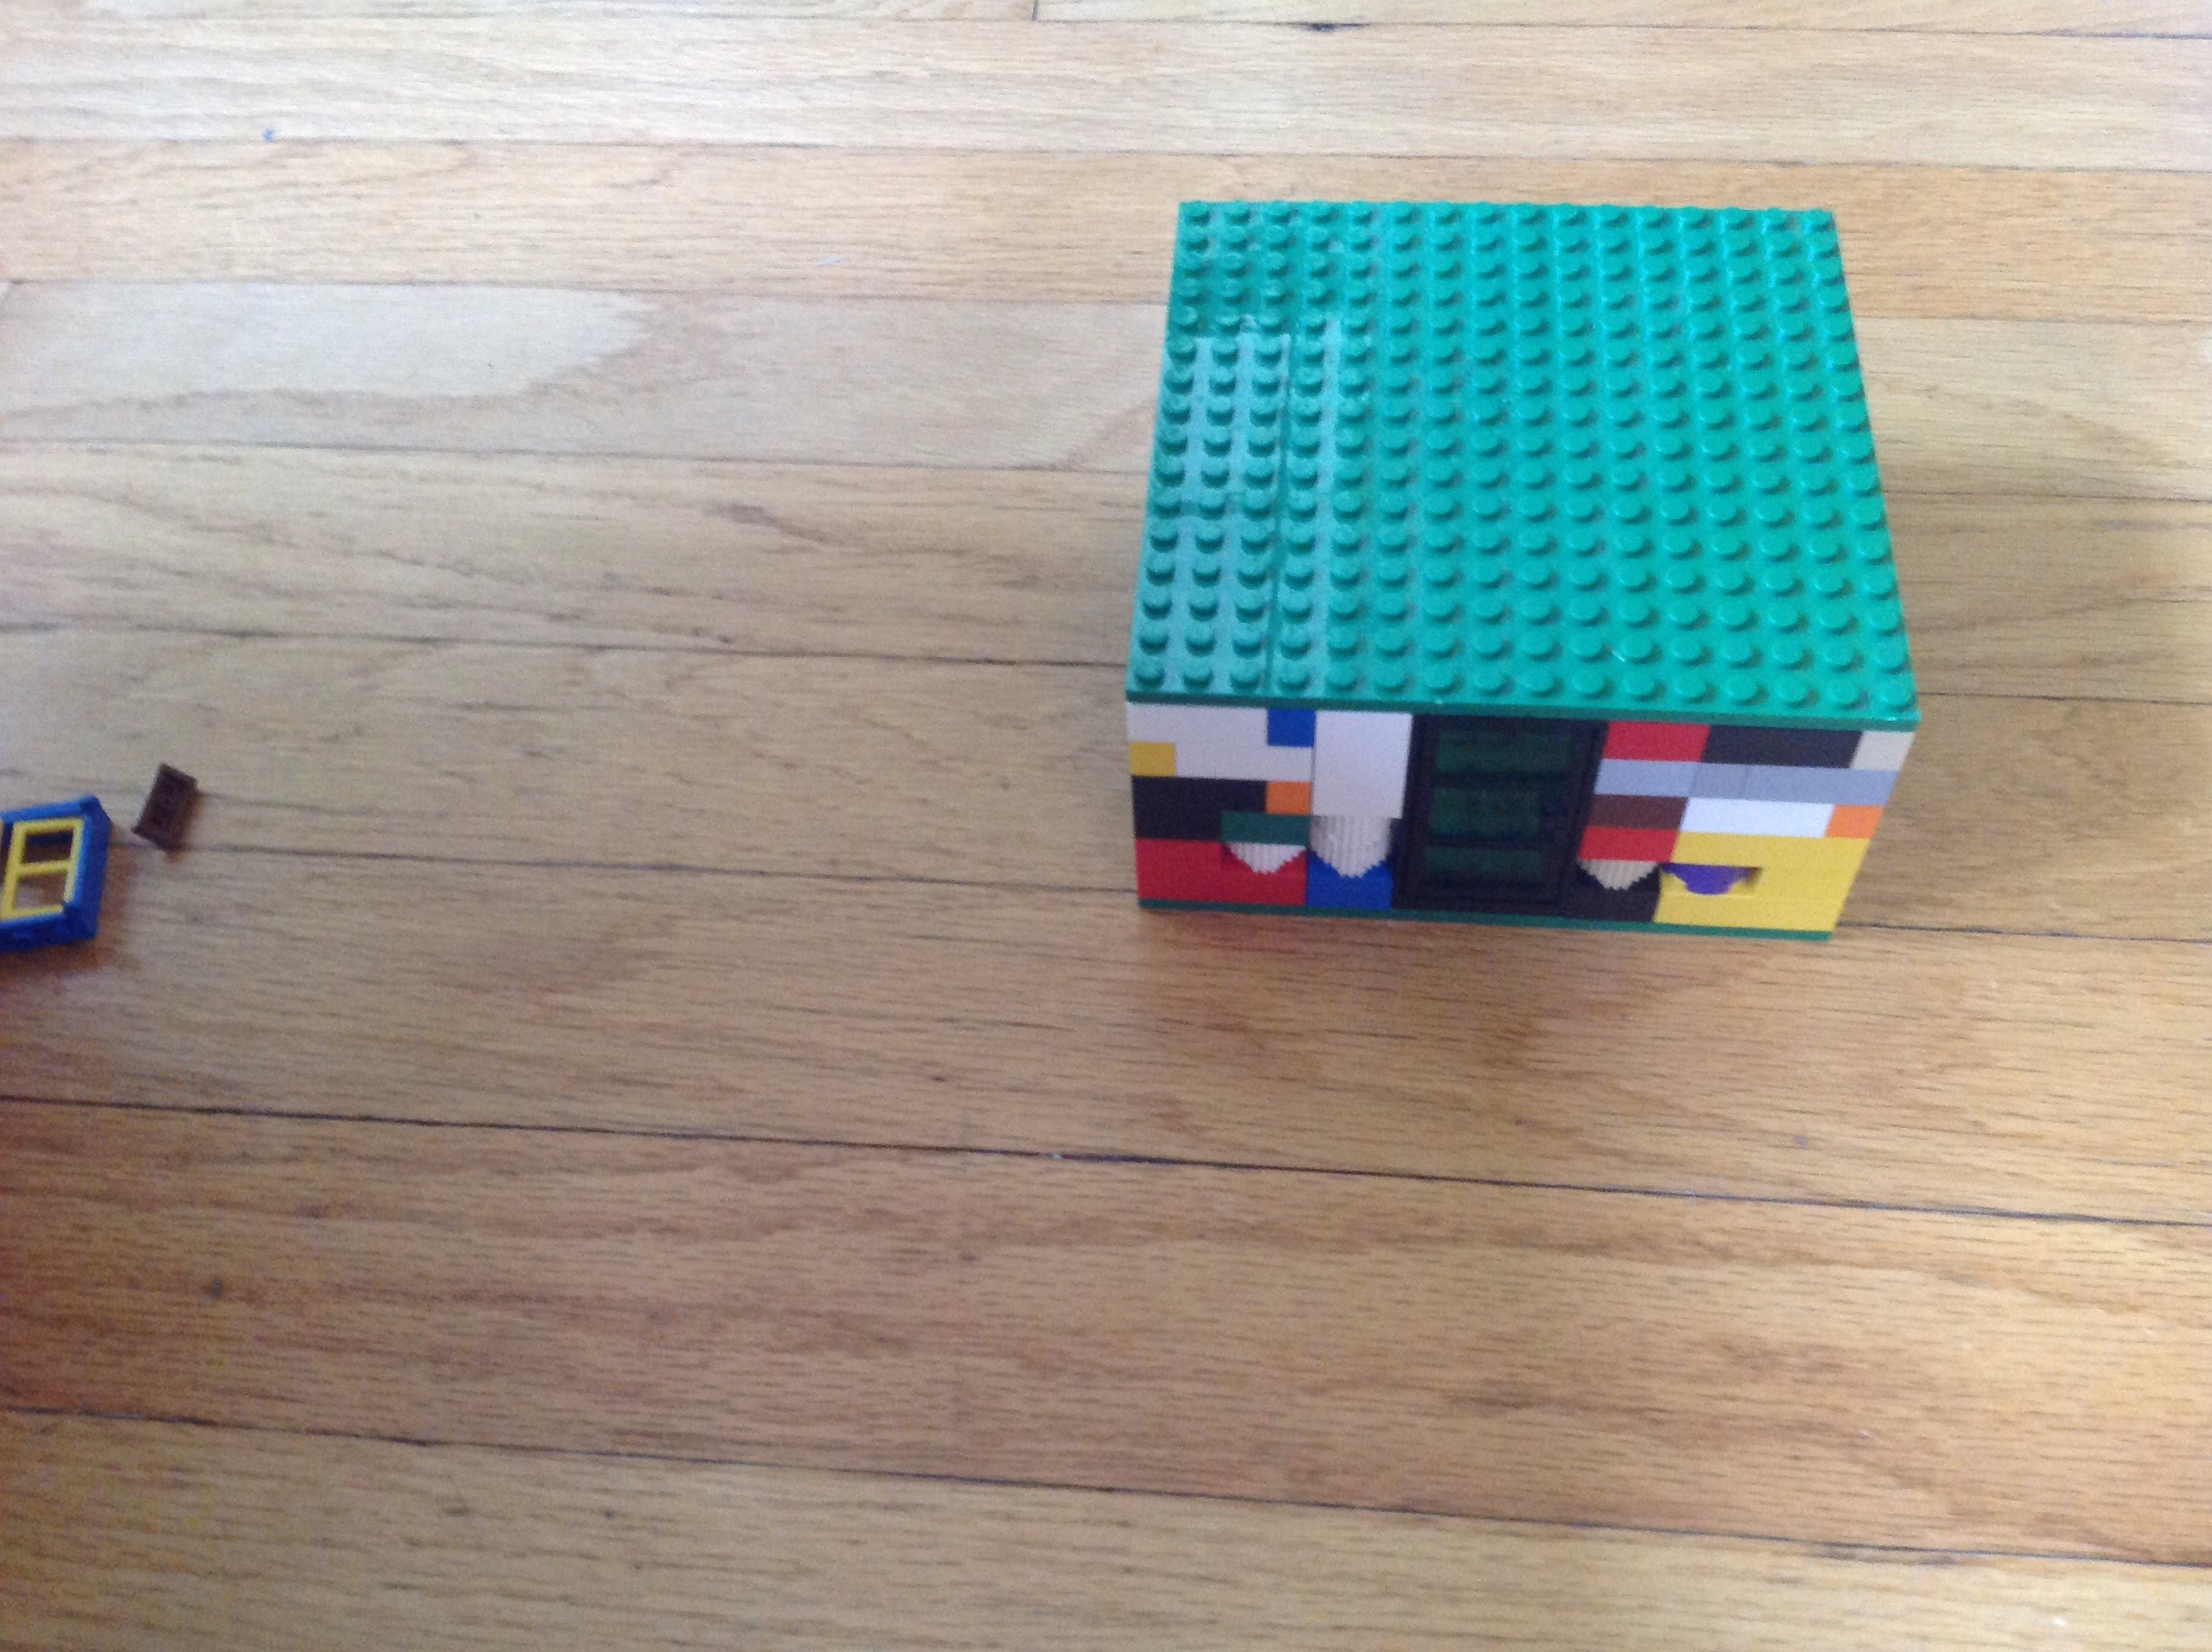 How to Build a Simple Lego House (For Children 8+)